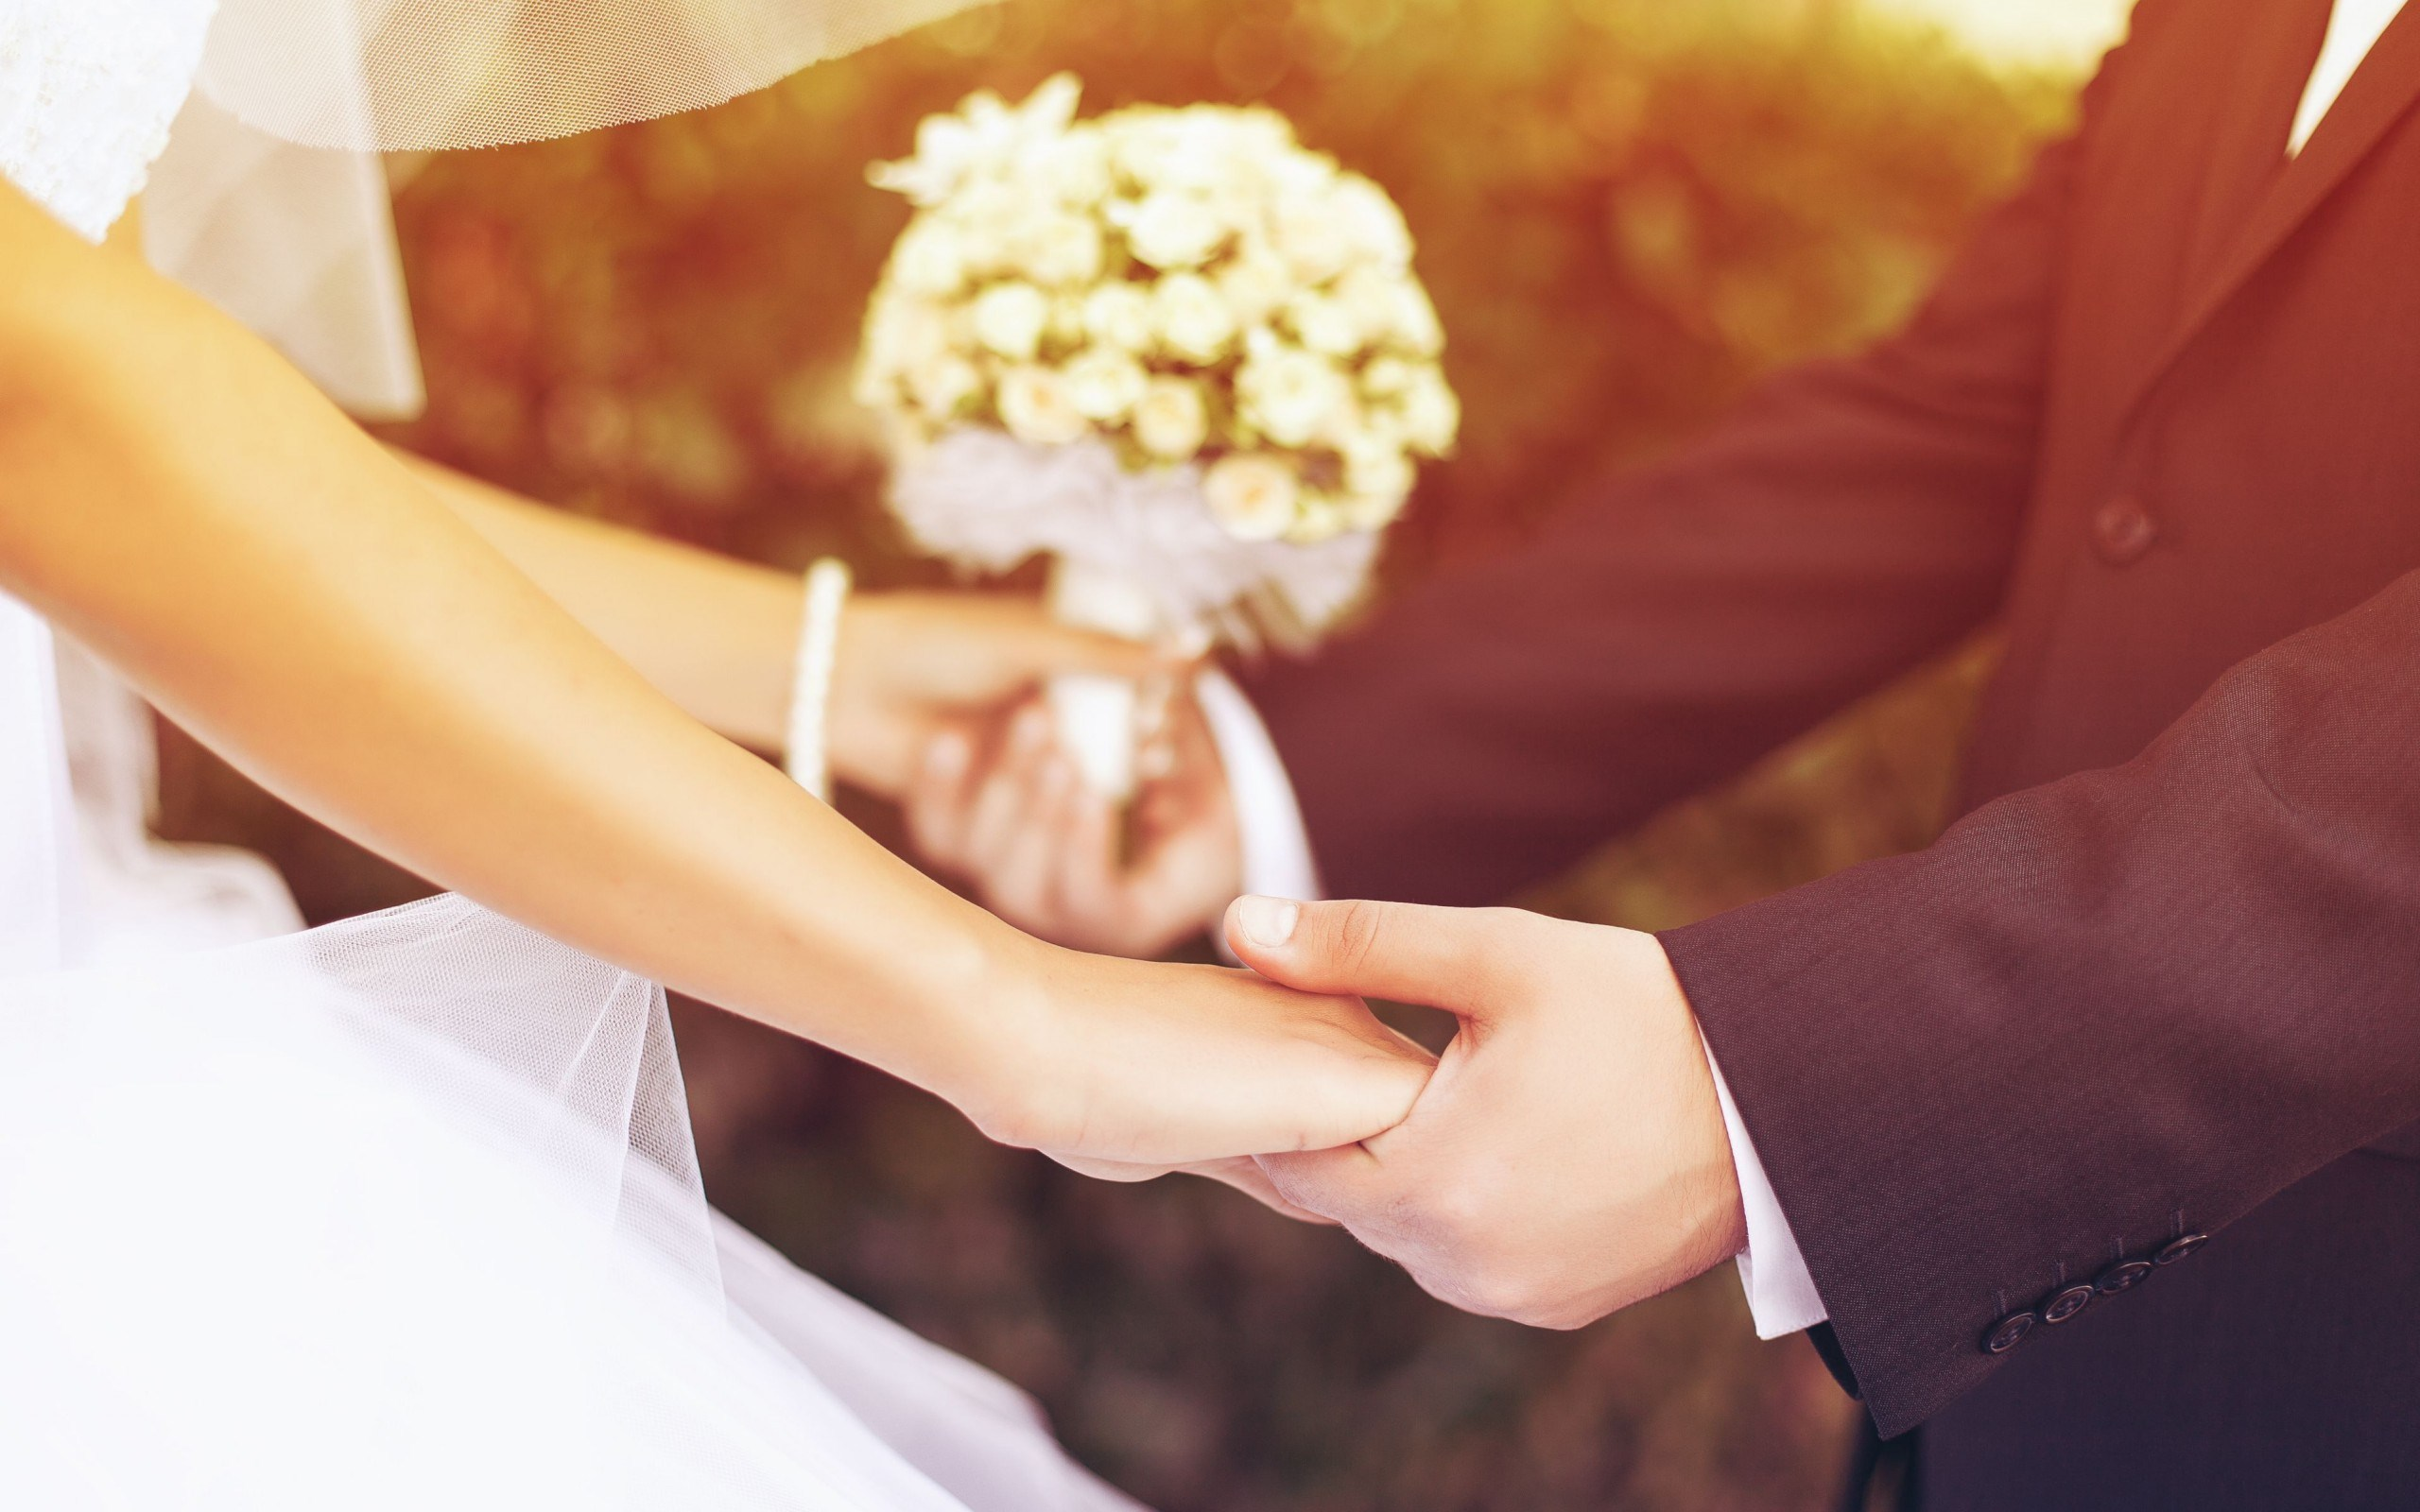 love-him-her-wedding-day-holding-hand-wide-hd-wallpaper